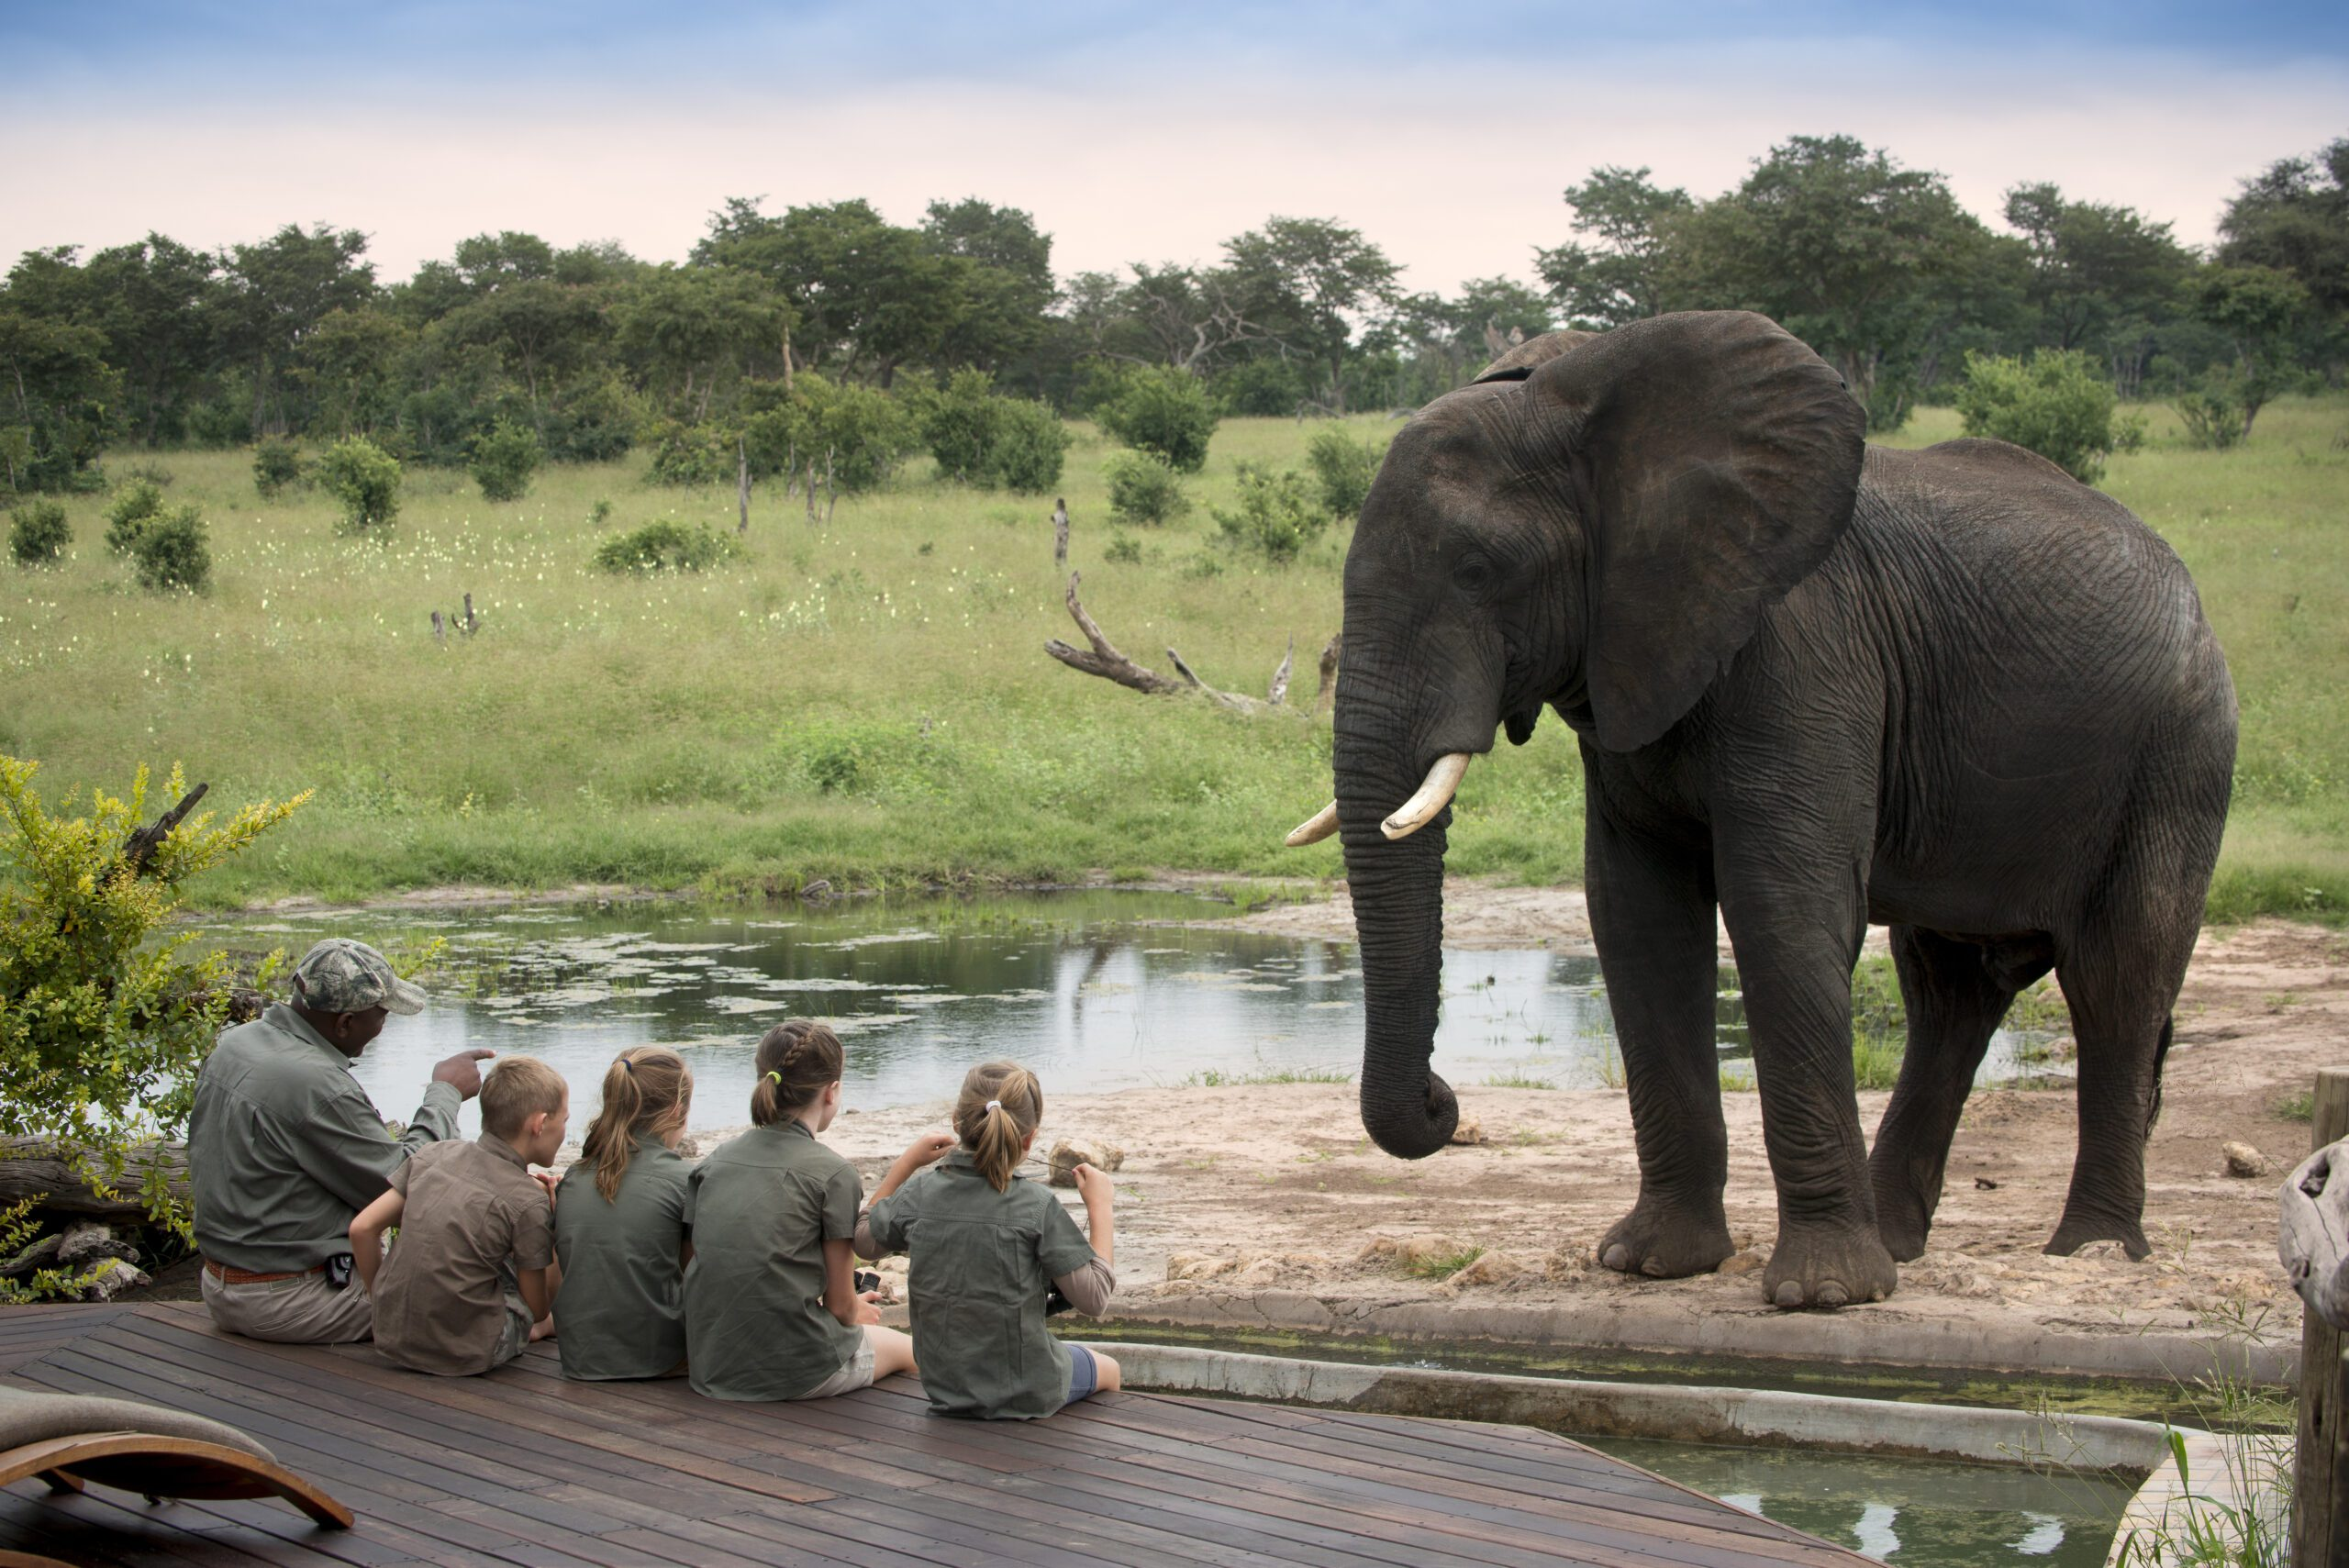 elephant at a camp waterhole with guide and children watching